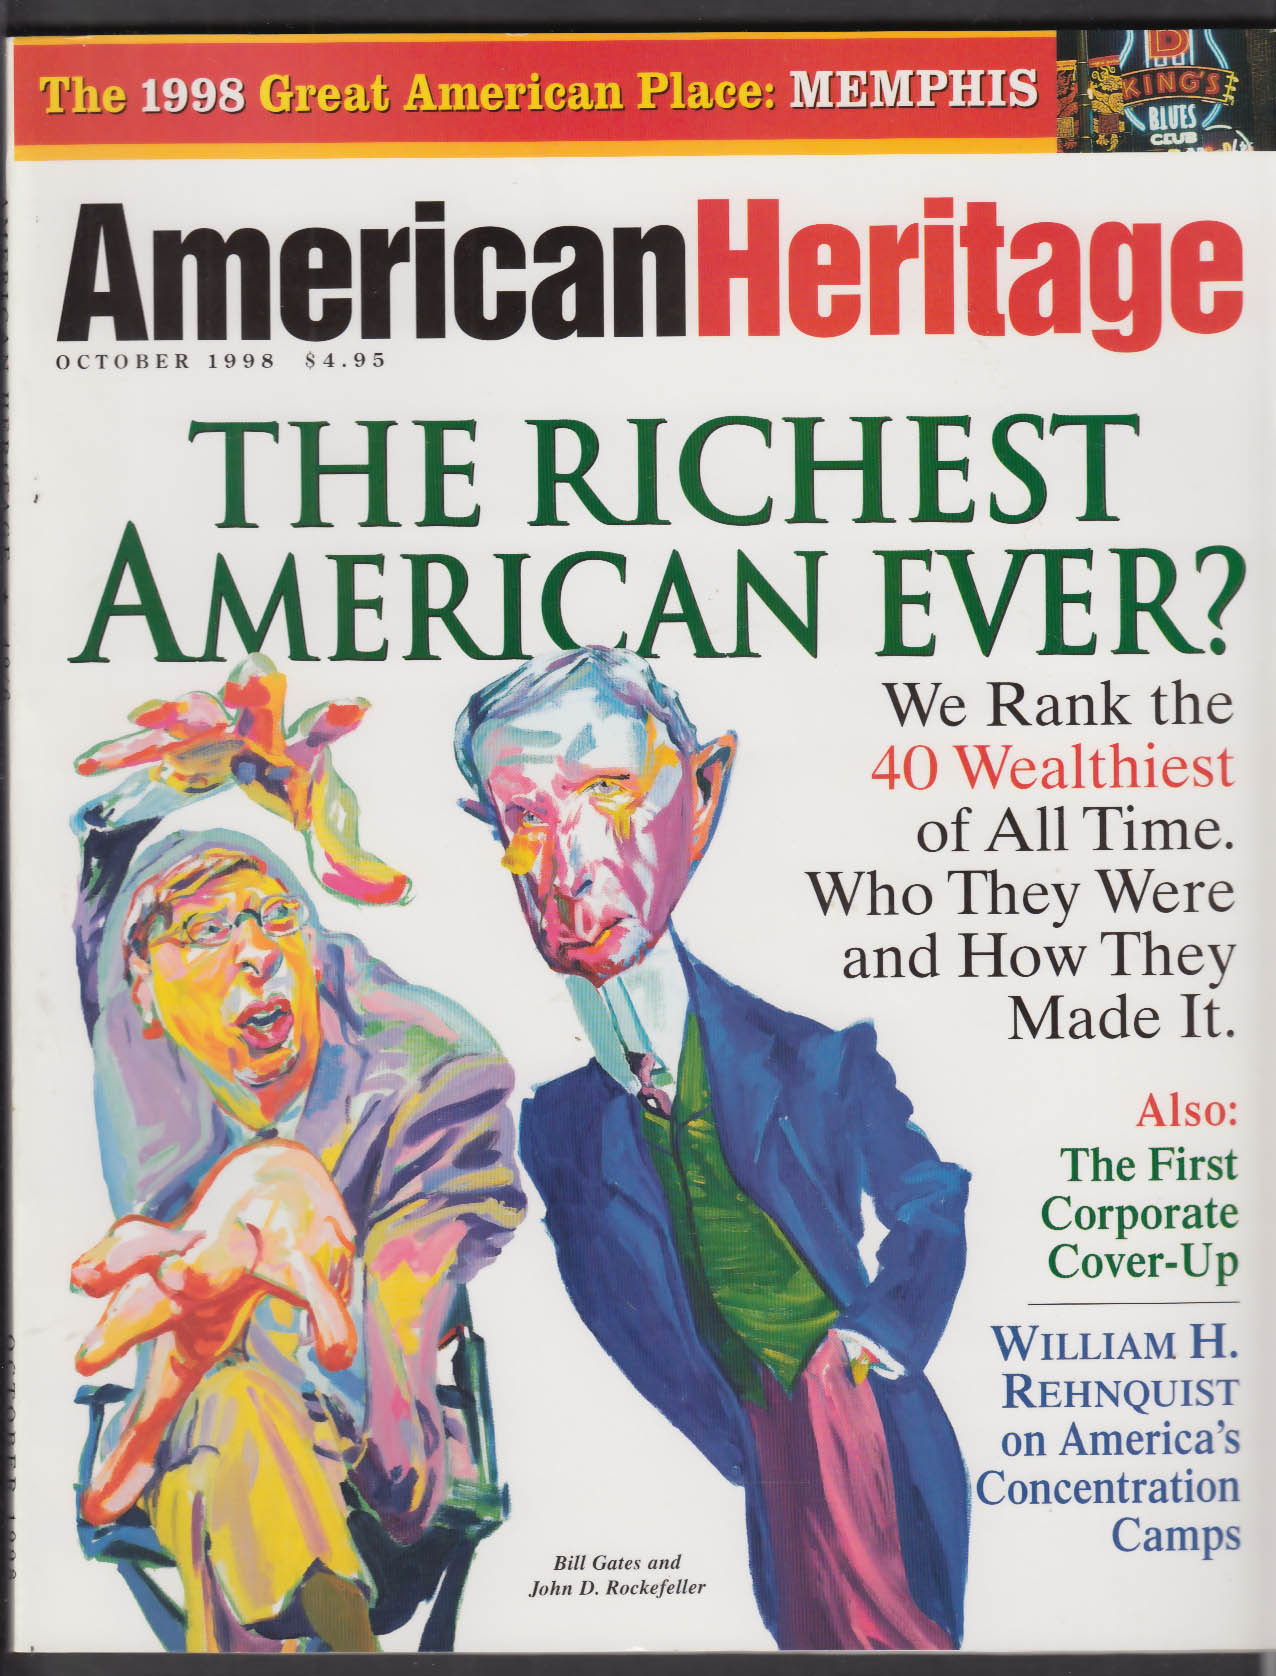 AMERICAN HERITAGE Bill Gates John D Rockefeller William H Rehnquist + 10 1998